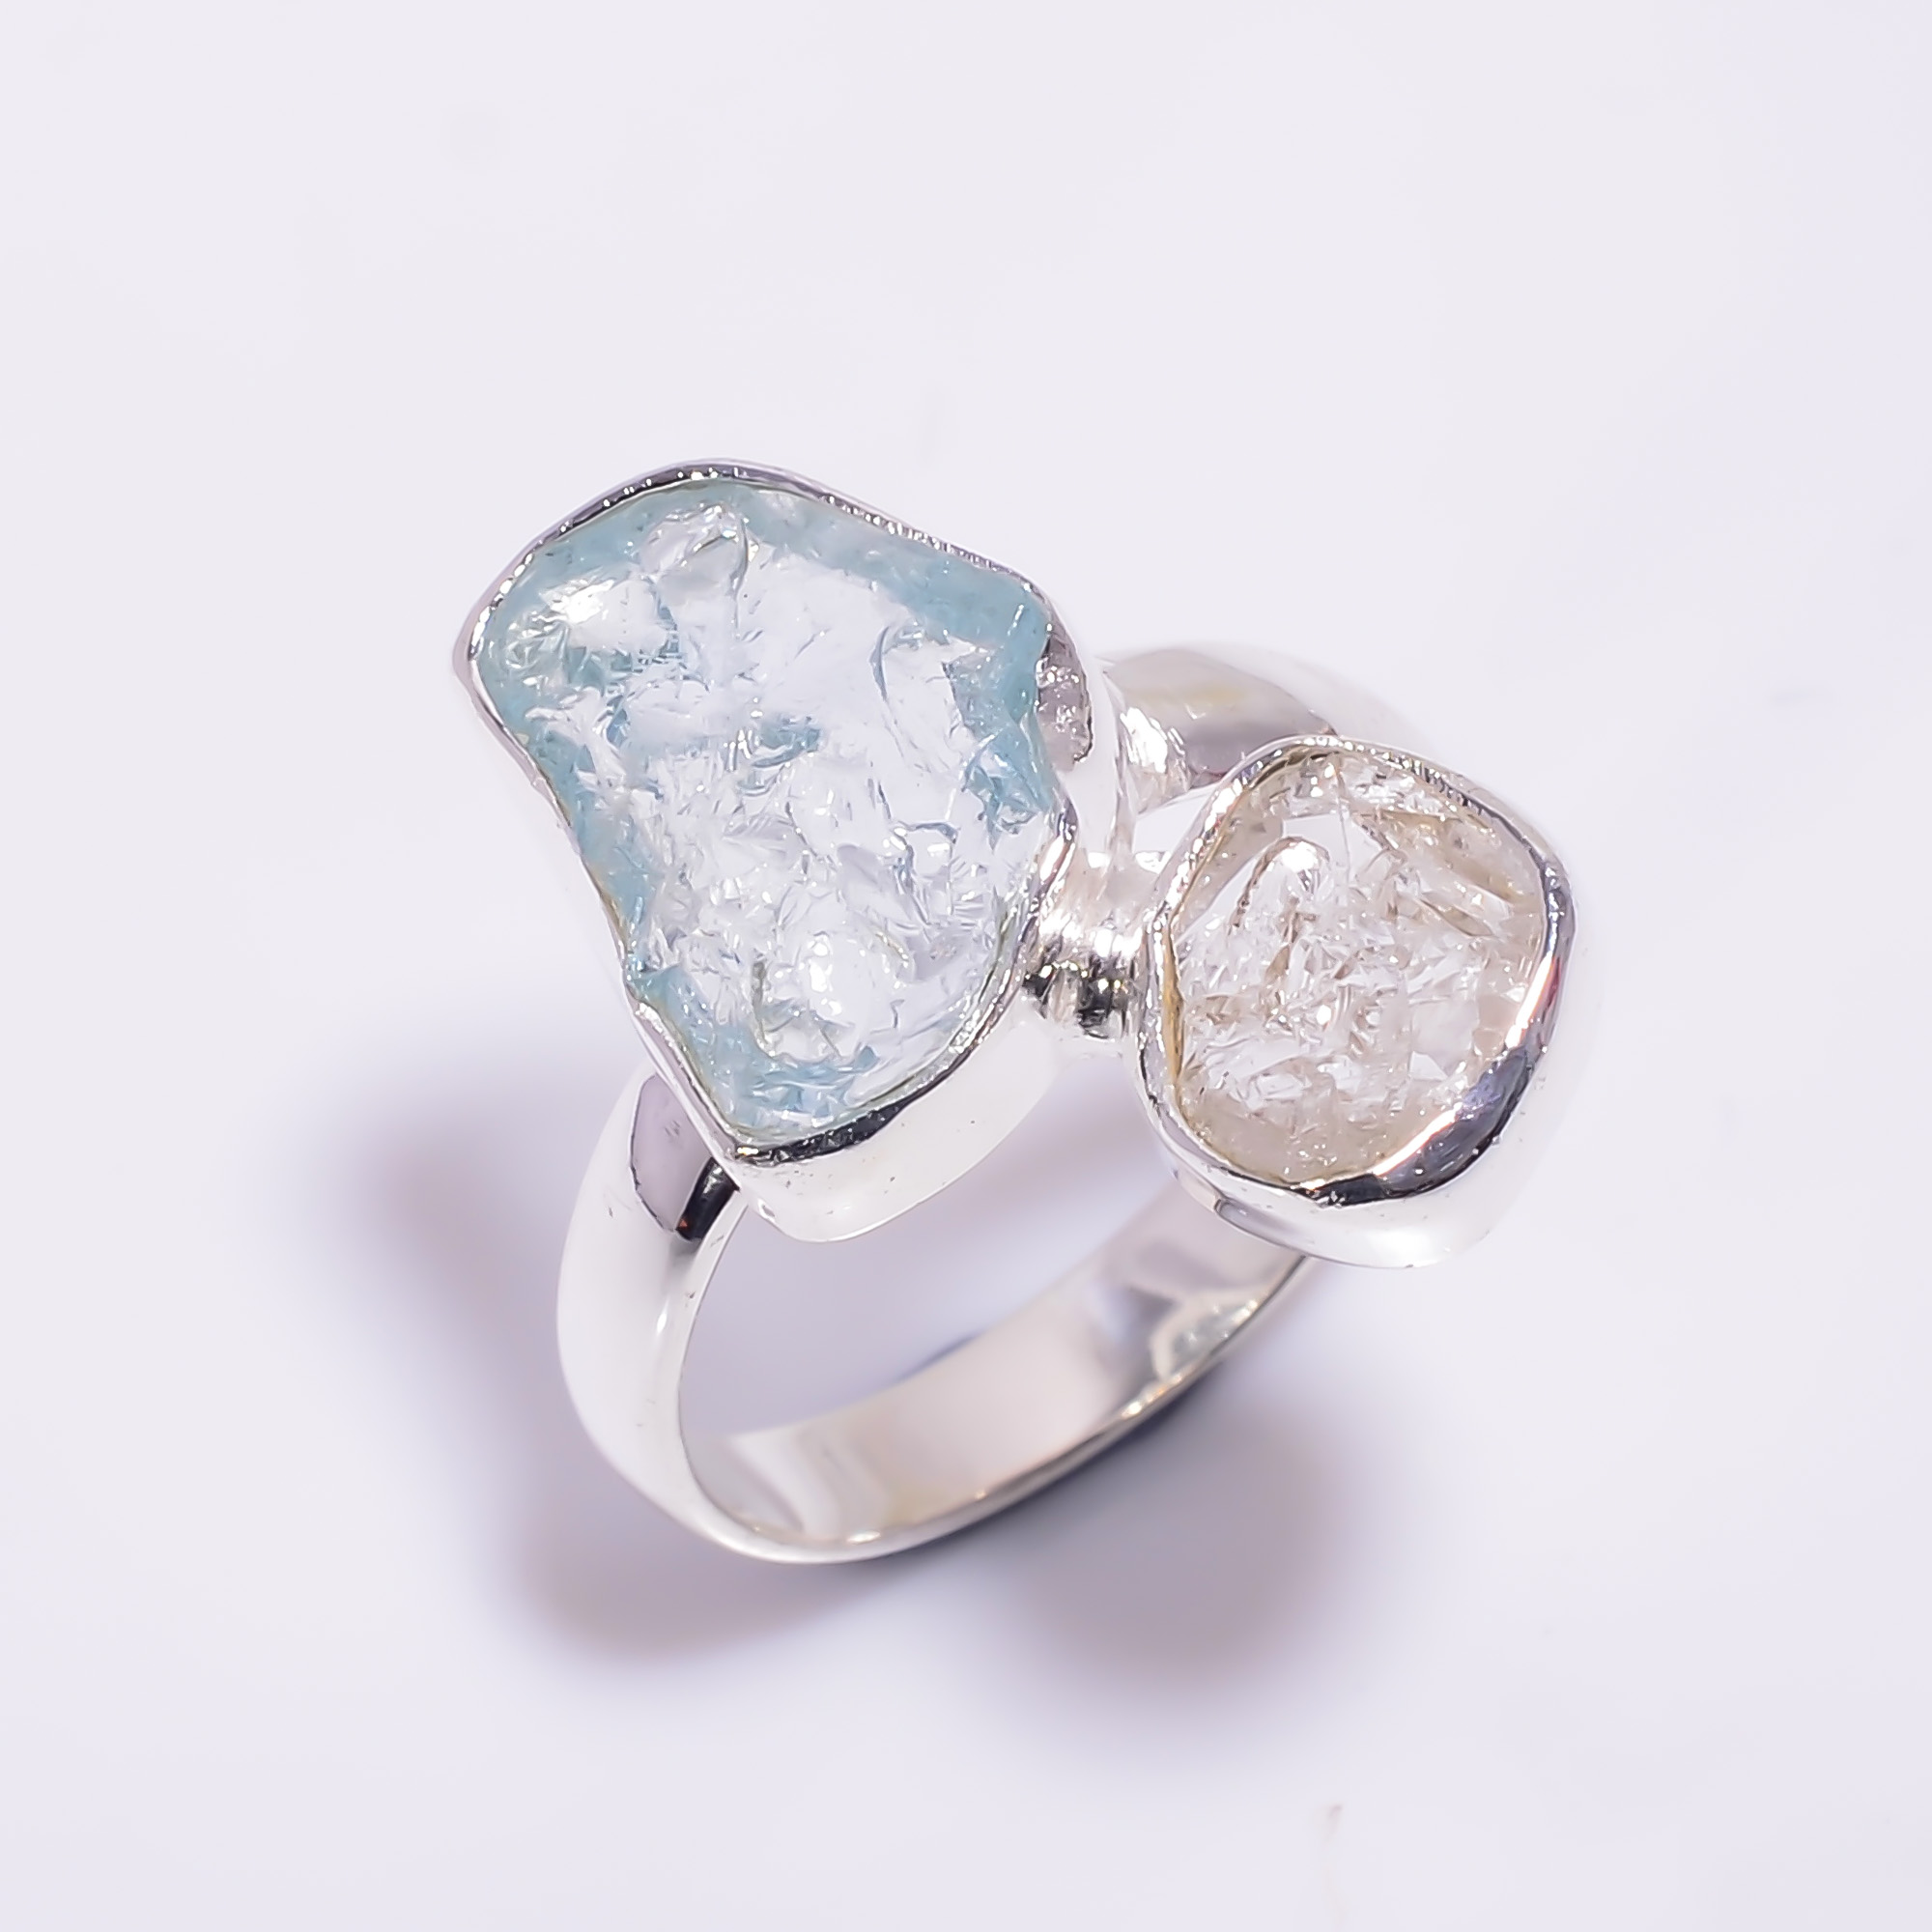 Natural Herkimer Diamond Aquamarine Raw Gemstone 925 Sterling Silver Ring Size US 8.25